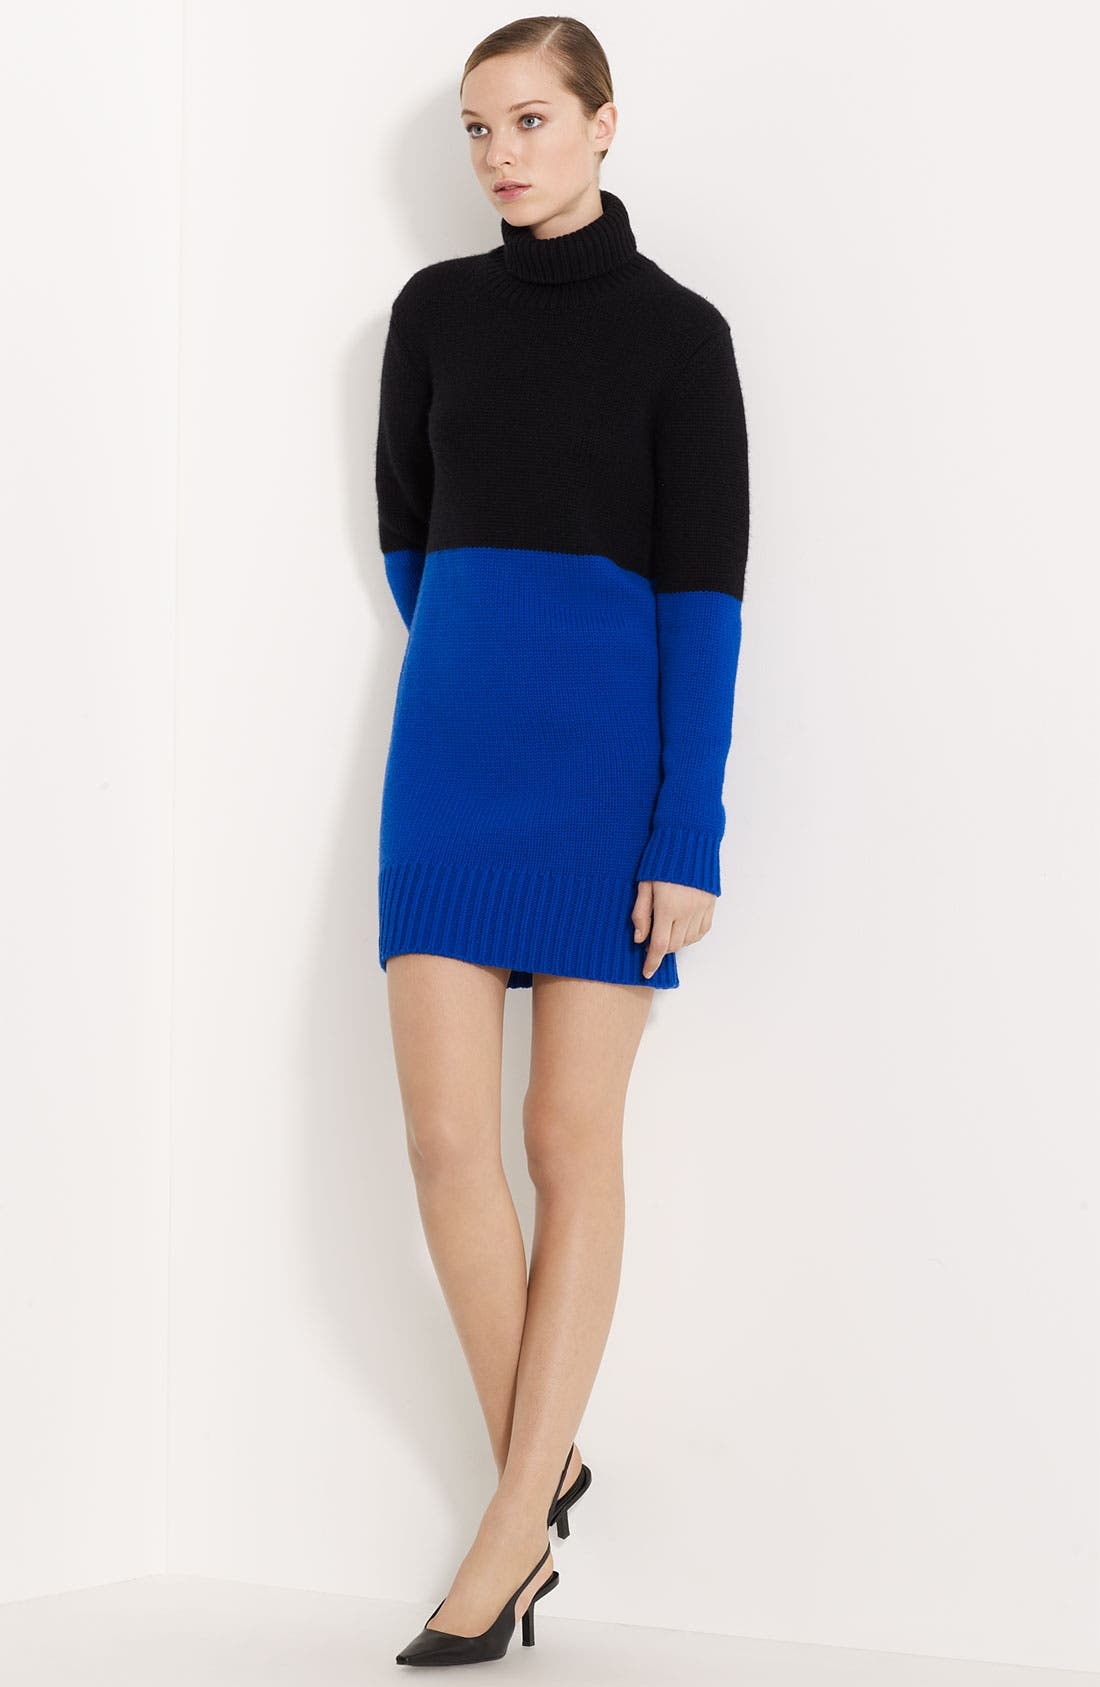 Alternate Image 1 Selected - Michael Kors Colorblocked Cashmere Dress